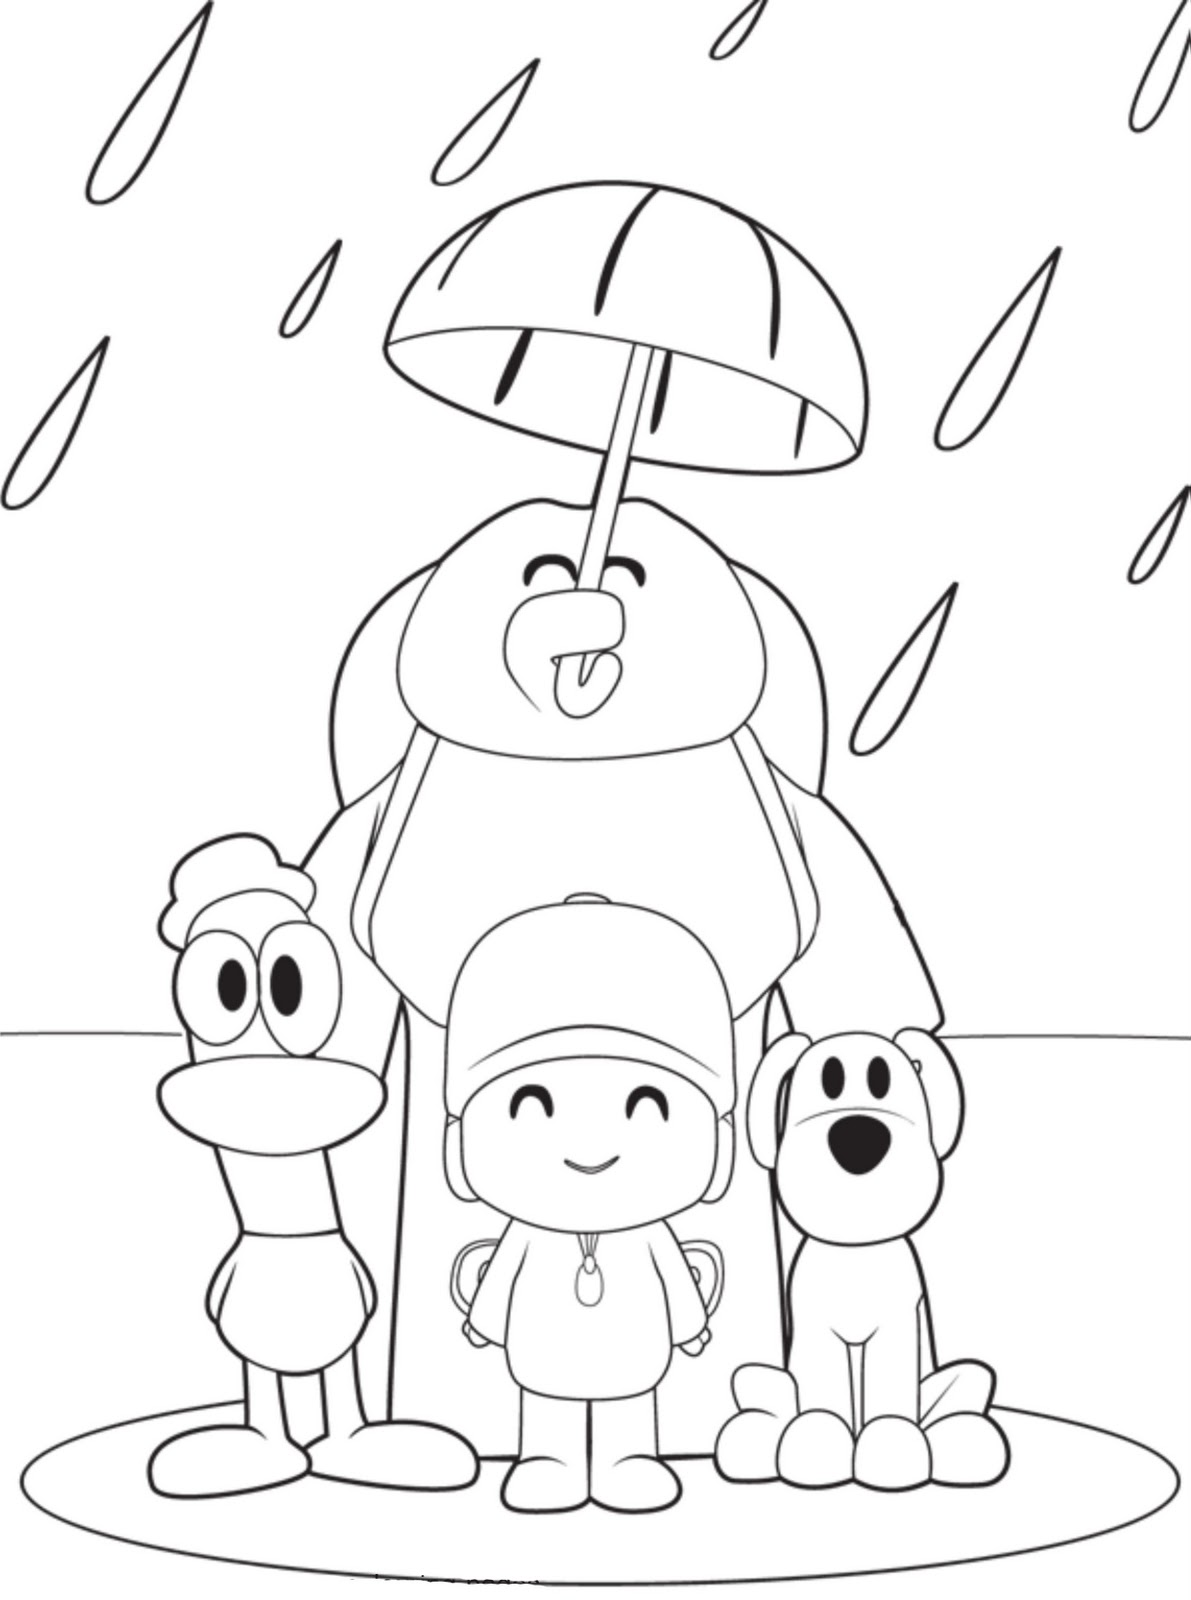 Coloriagepocoyoetsesamis on Mario Coloring Pages